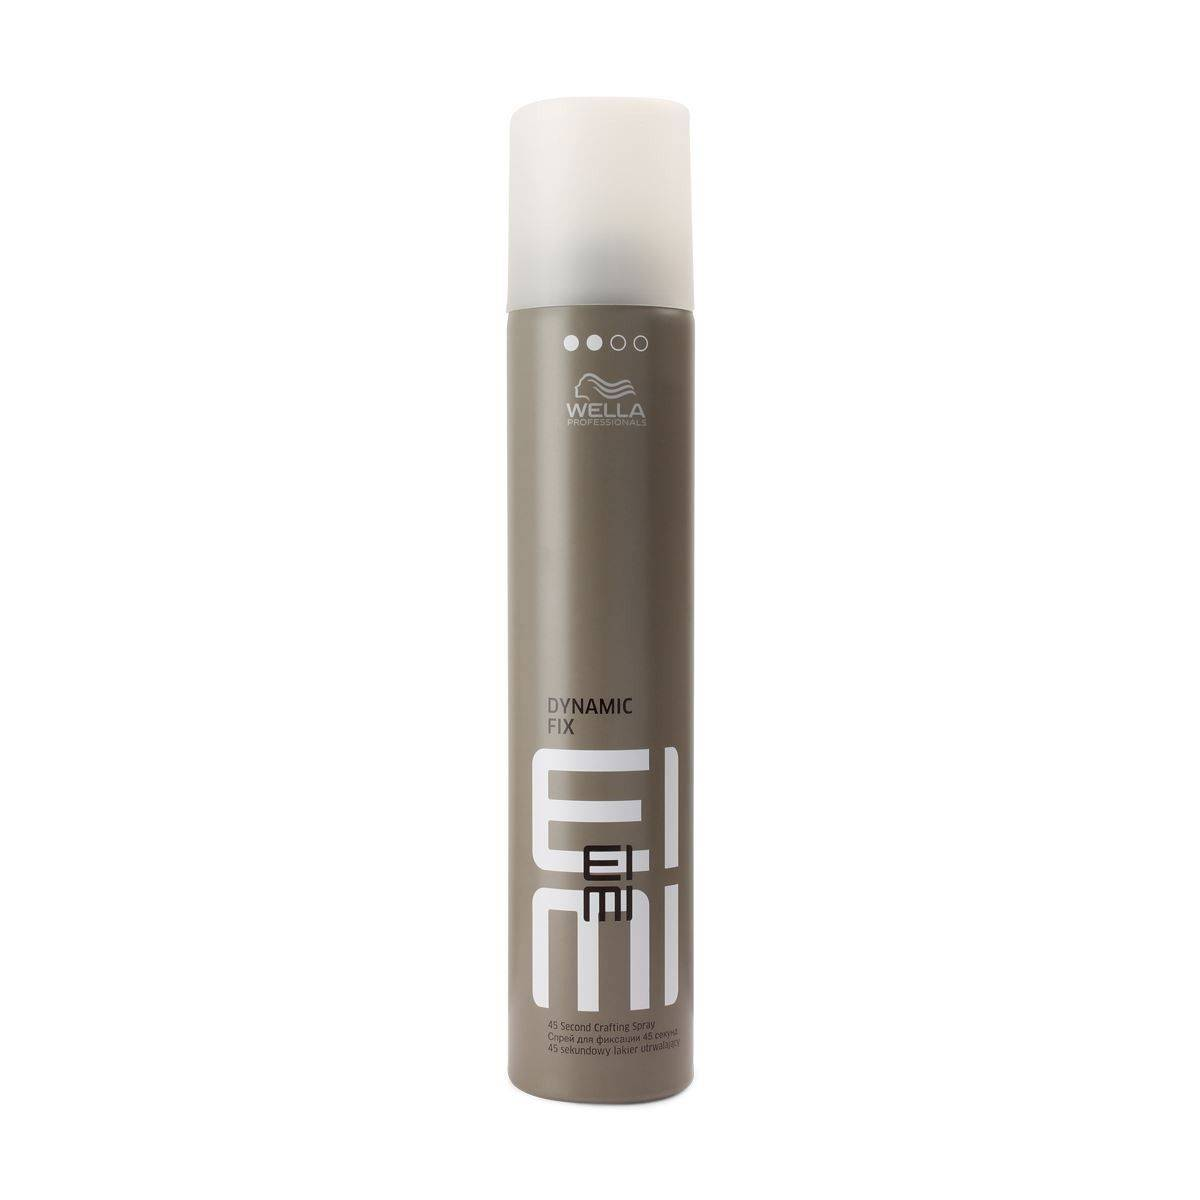 Wella Eimi Dynamic Fix 45 Second Crafting Spray 300ml